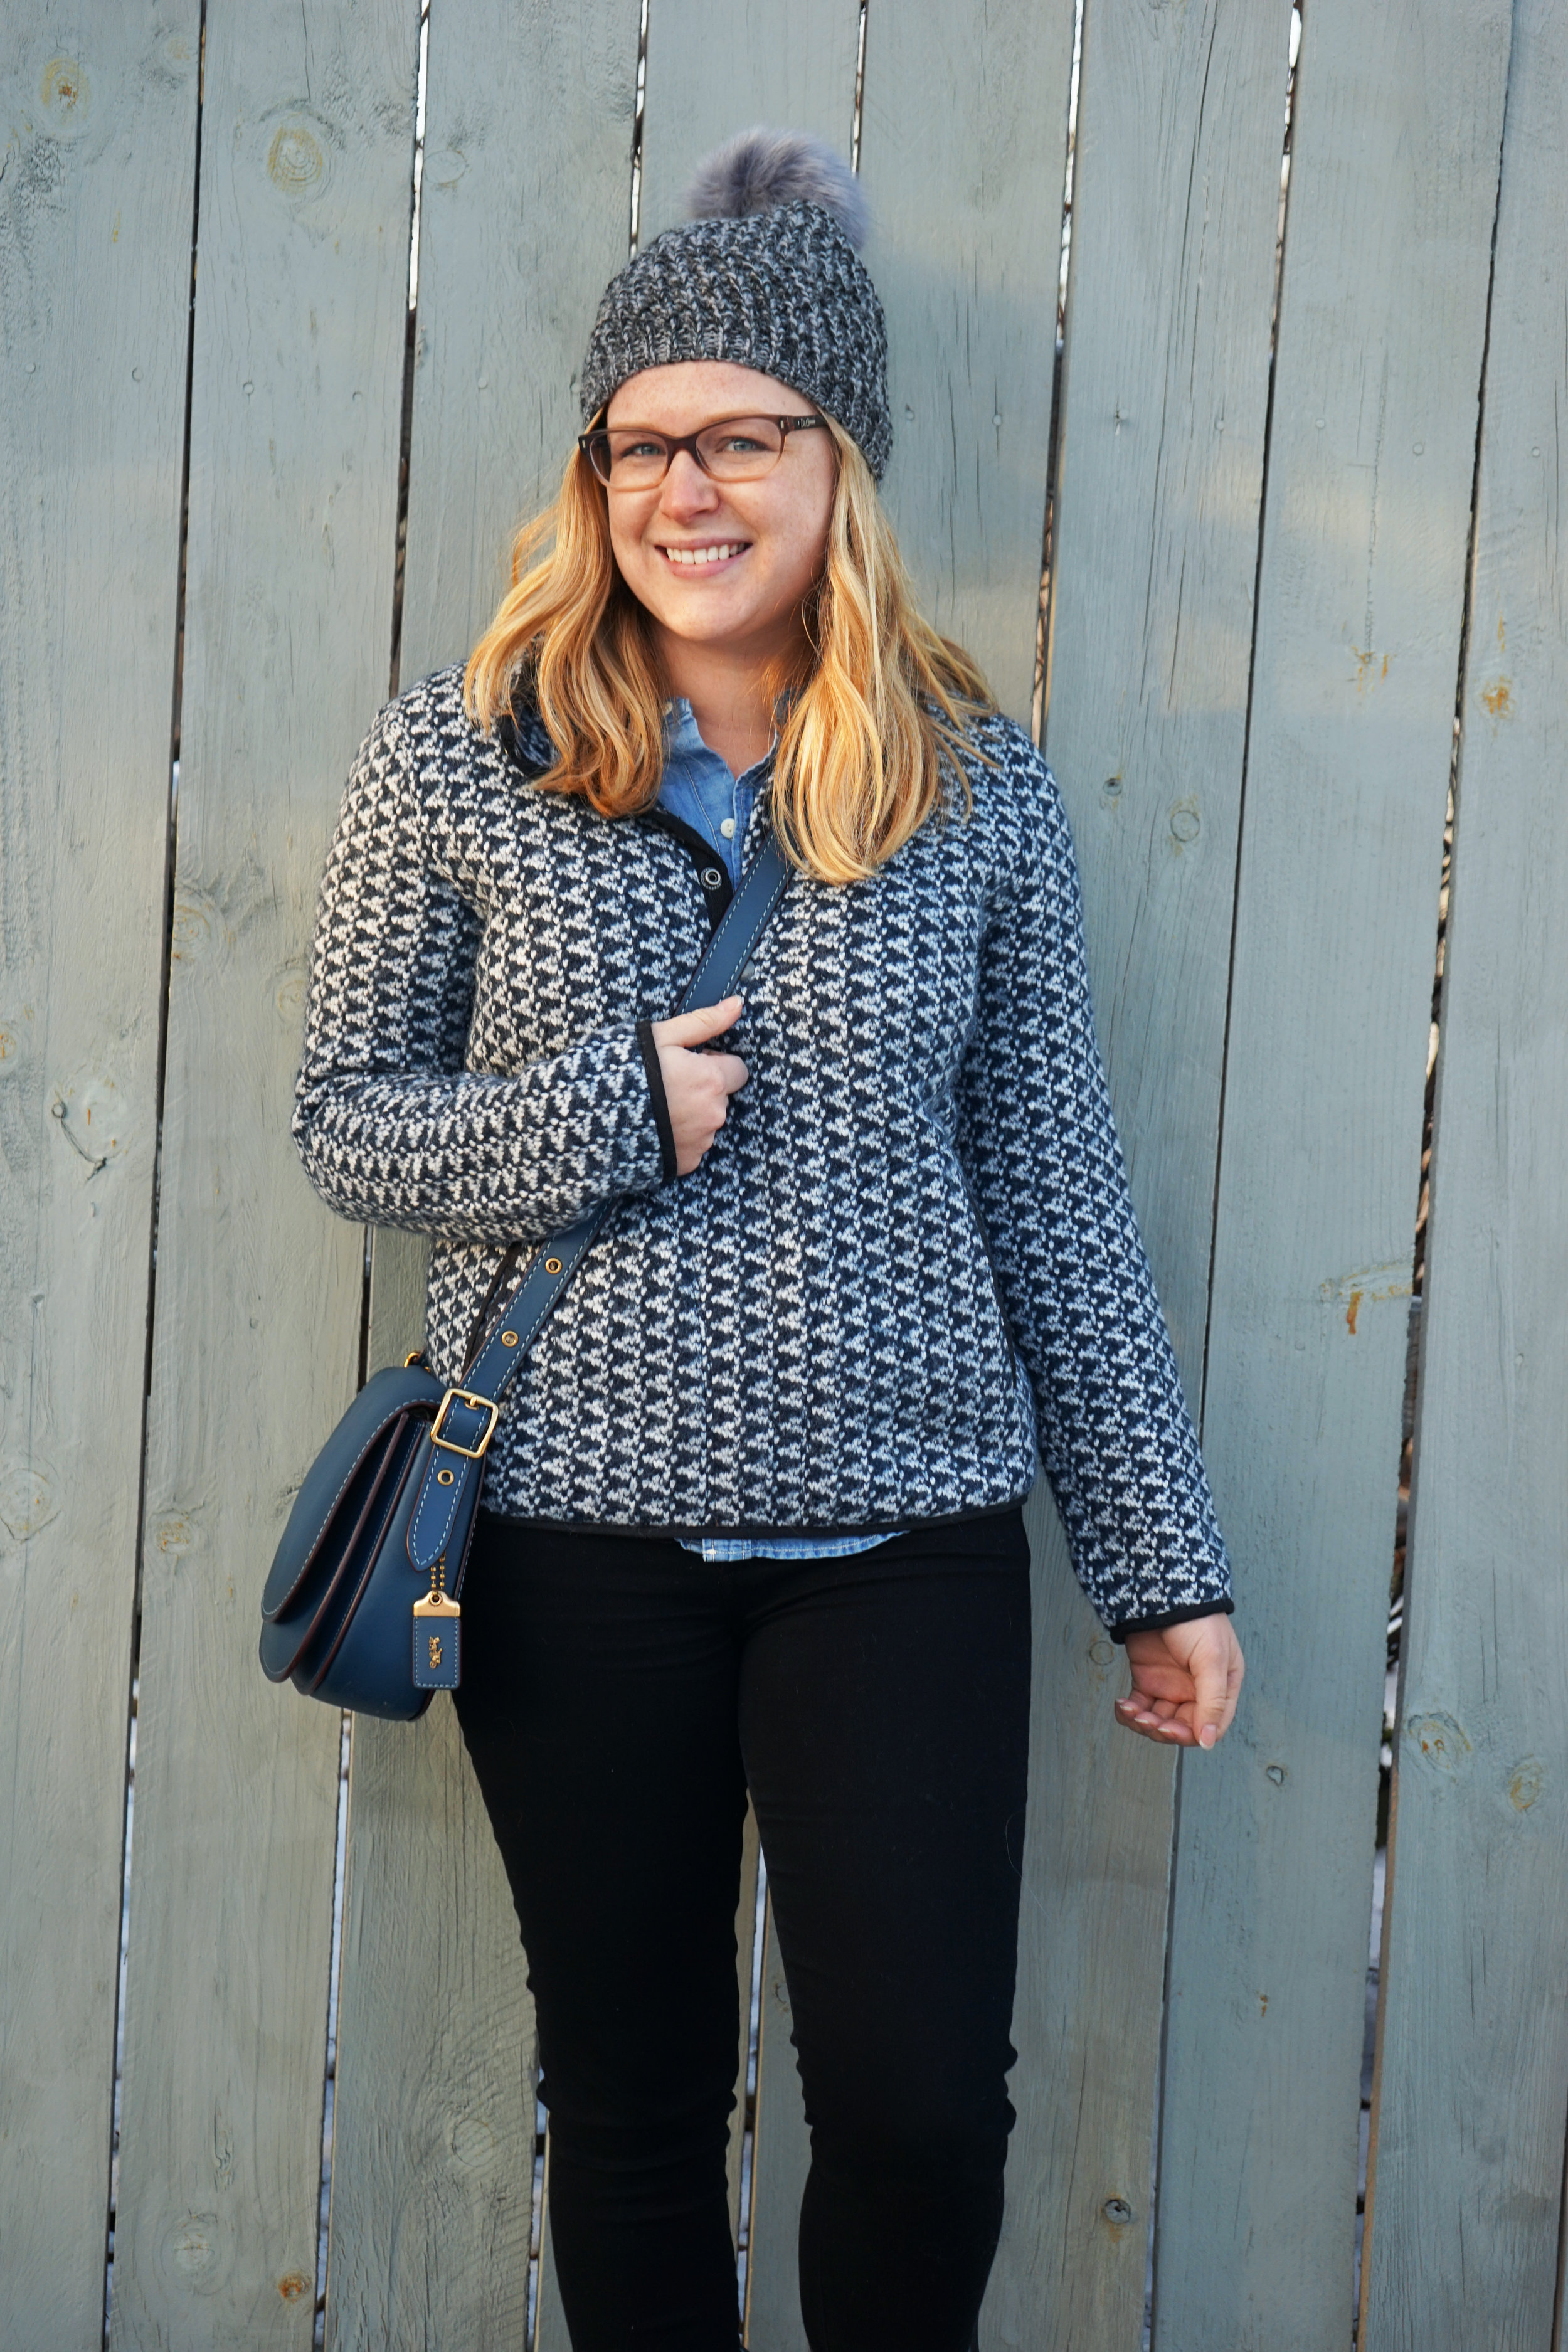 Maggie a la Mode - Madewell Harmonica Pullover, Madewell Perfect Chambray Sunday Shirt, Citizens of Humanity Rocket Jeans Axel, Free People Powder River Pom Beanie, Coach Saddle Bag 23